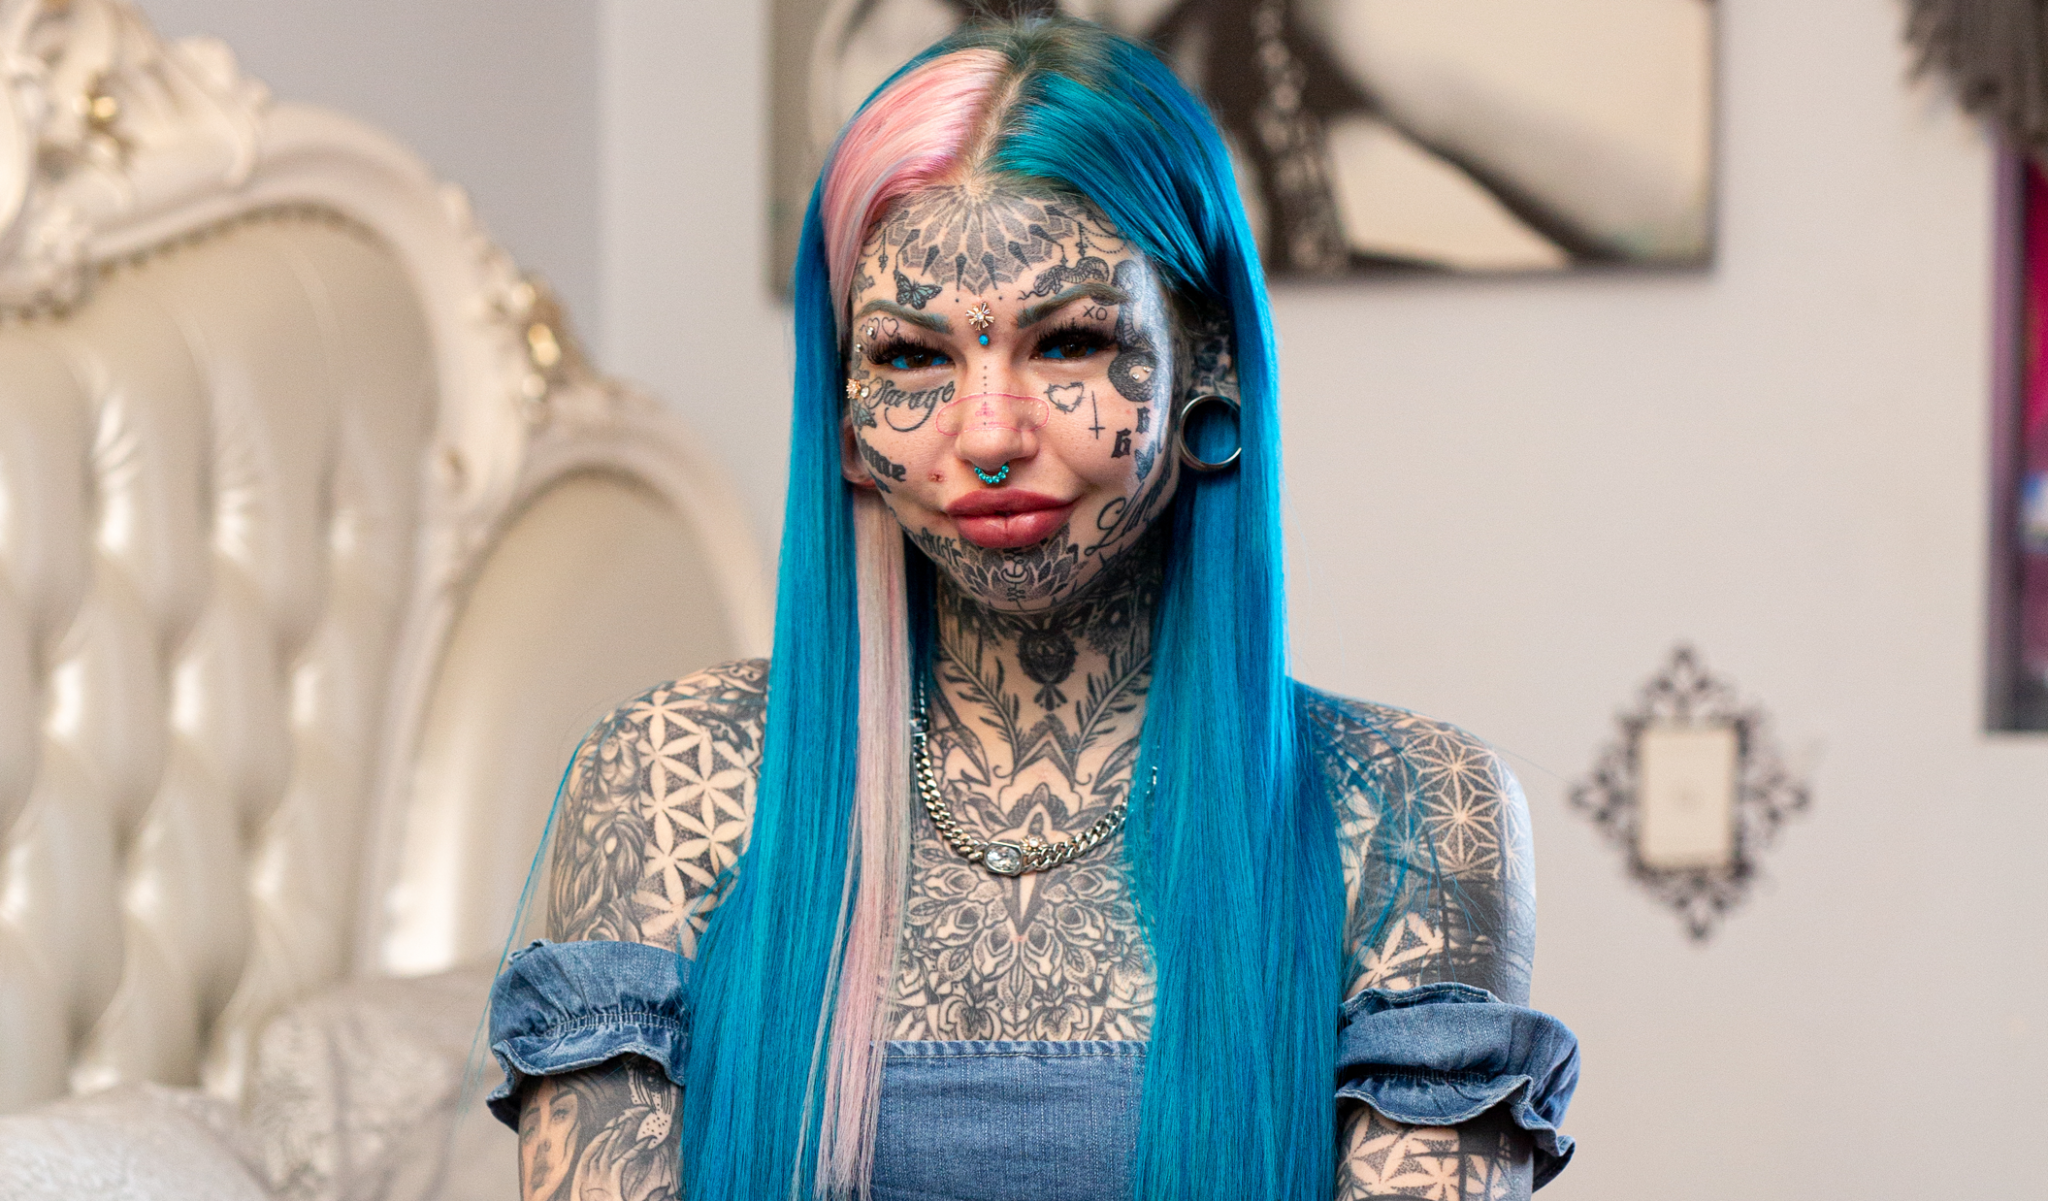 Amber Luke, Whose Body Is 98% Tattooed, Covers Them With Makeup